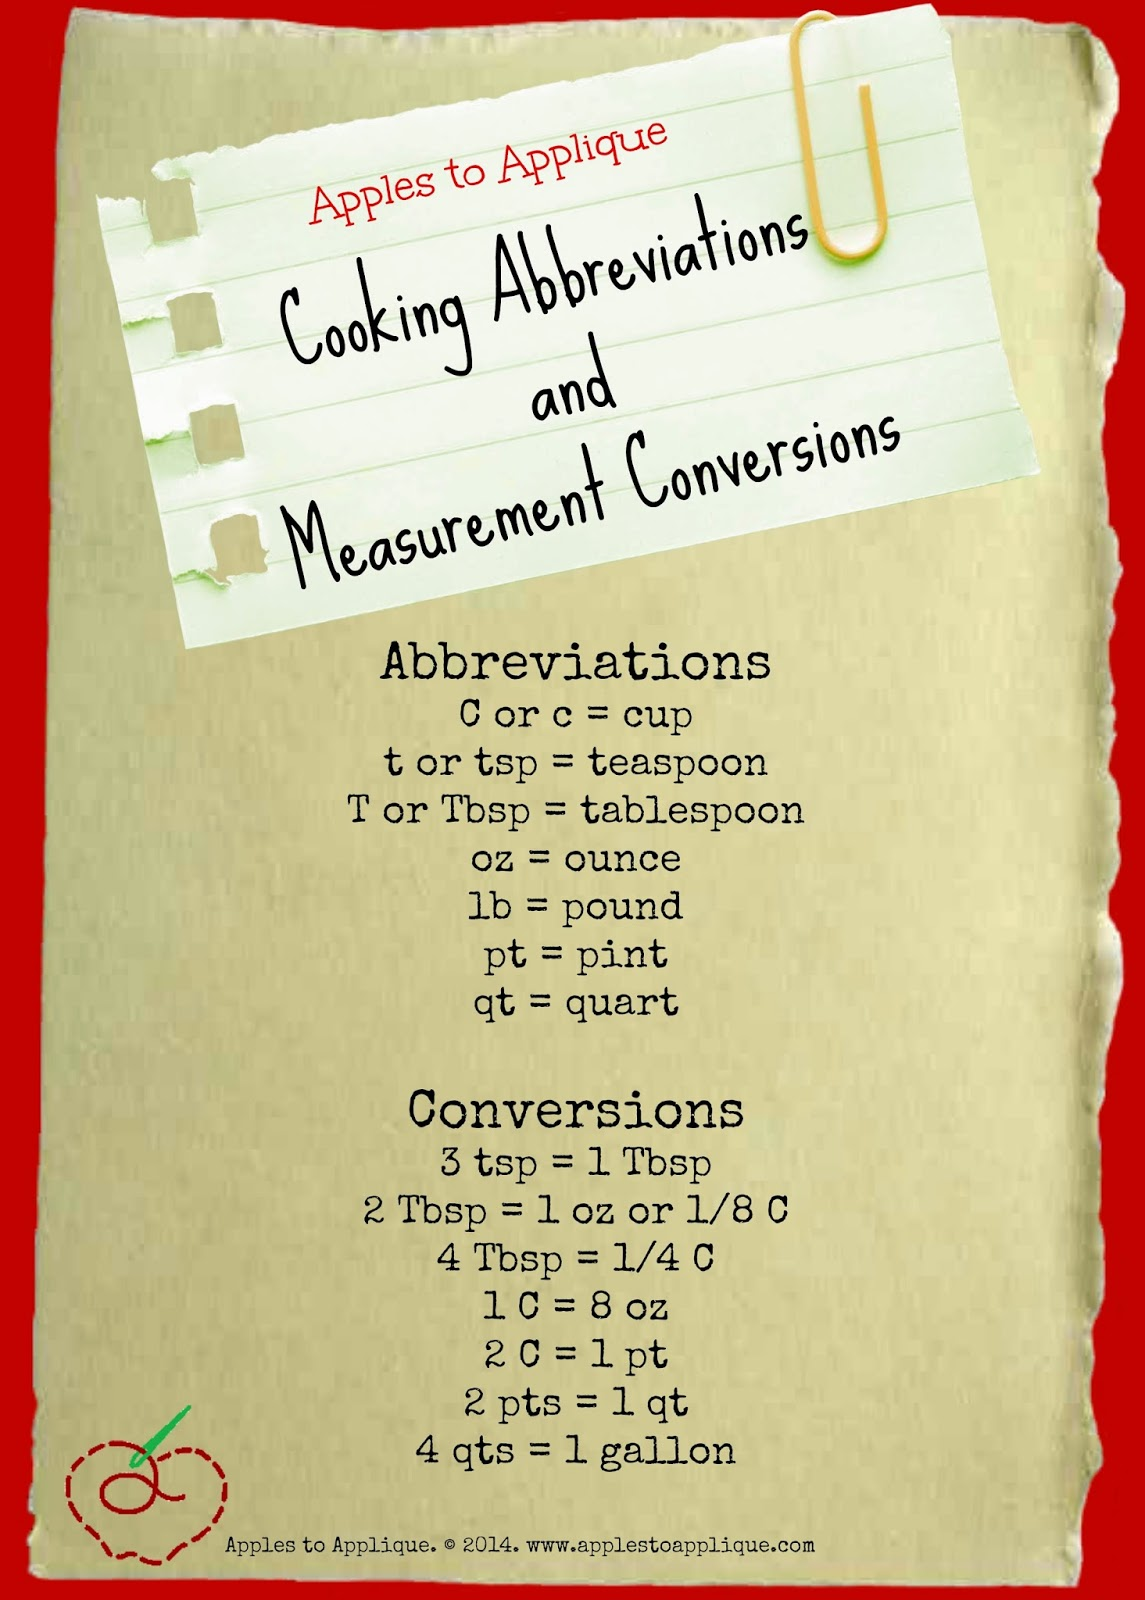 Cooking Abbreviations and Measurement Conversions | Apples to Applique